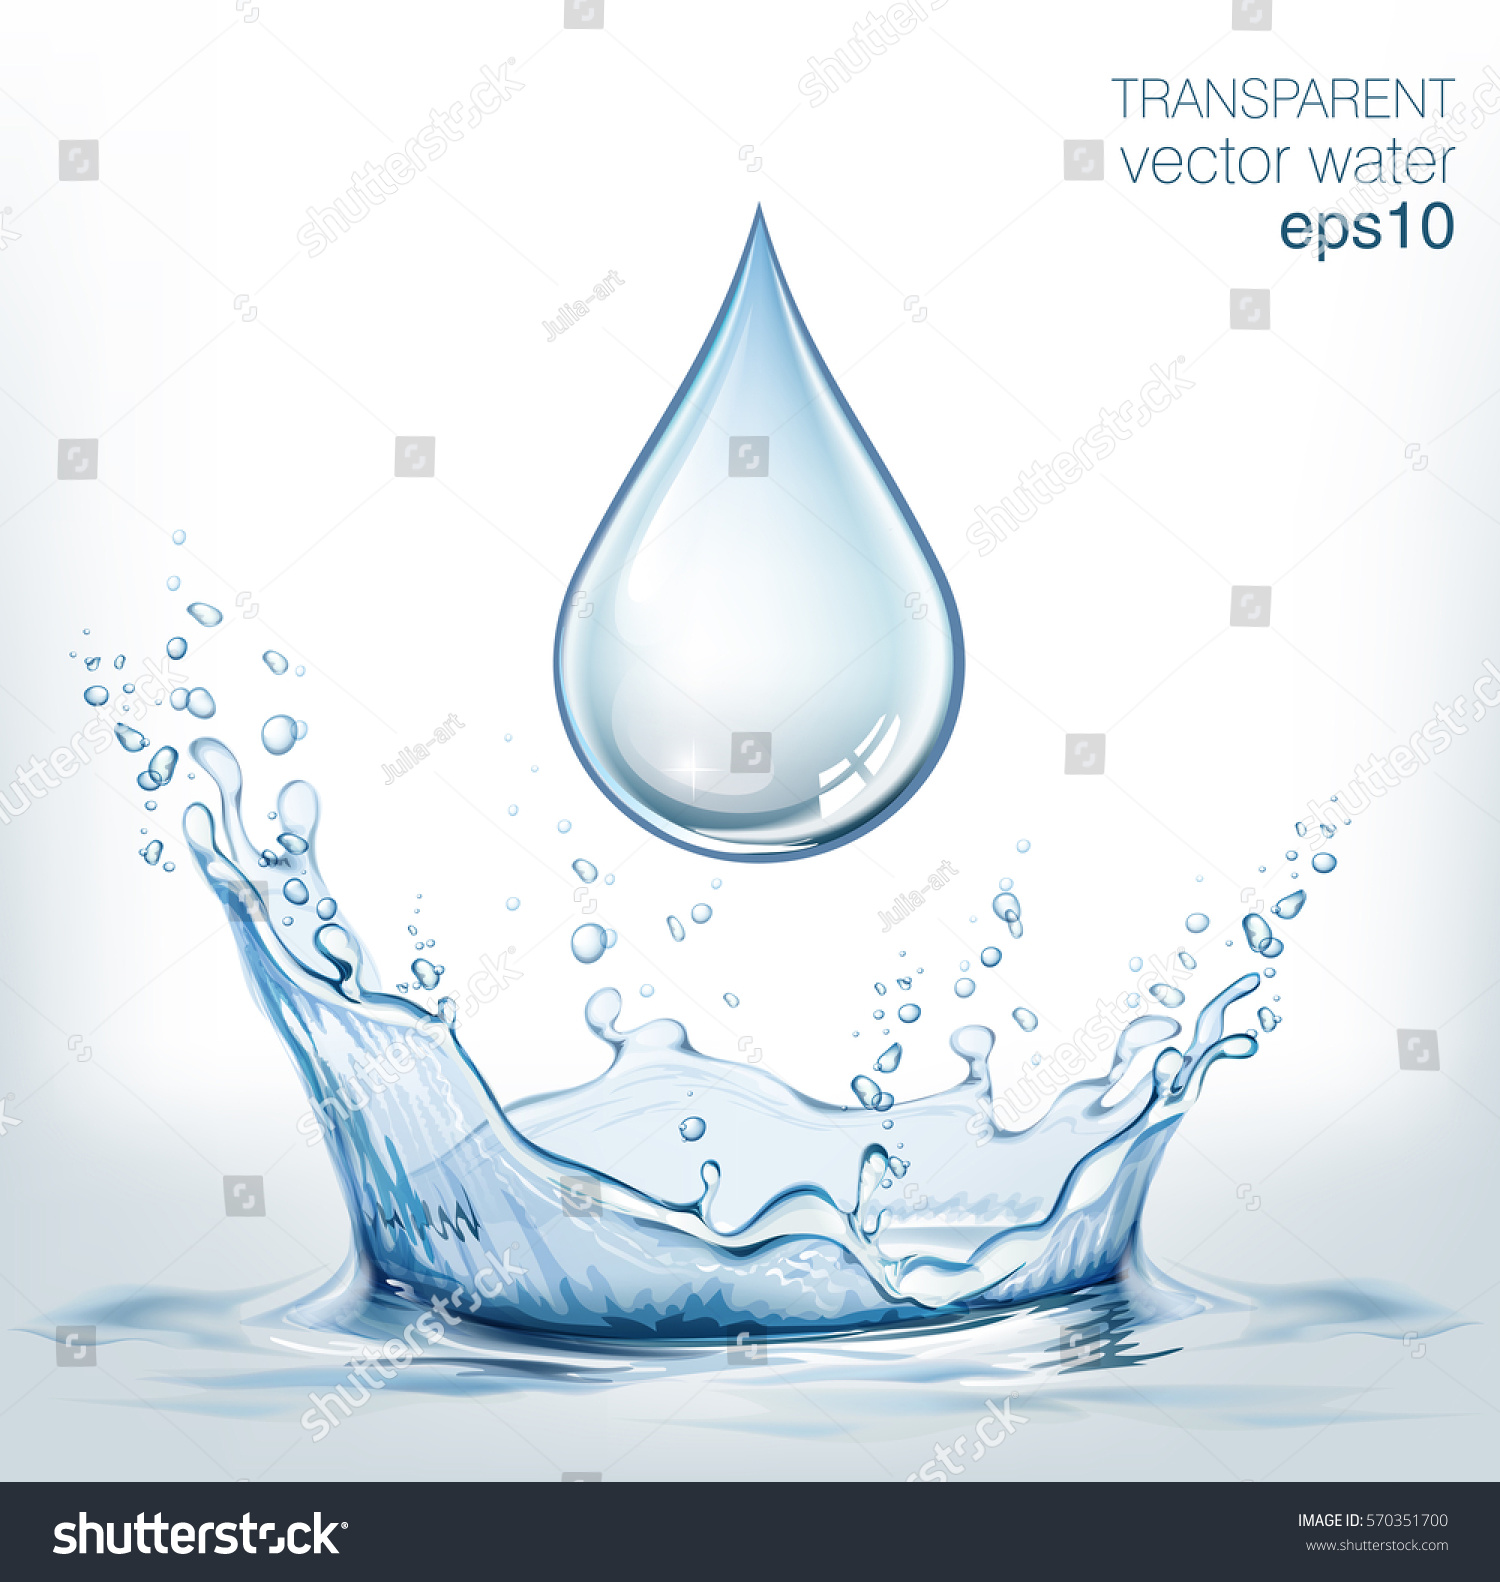 Transparent vector water splash and water drop on light background #570351700